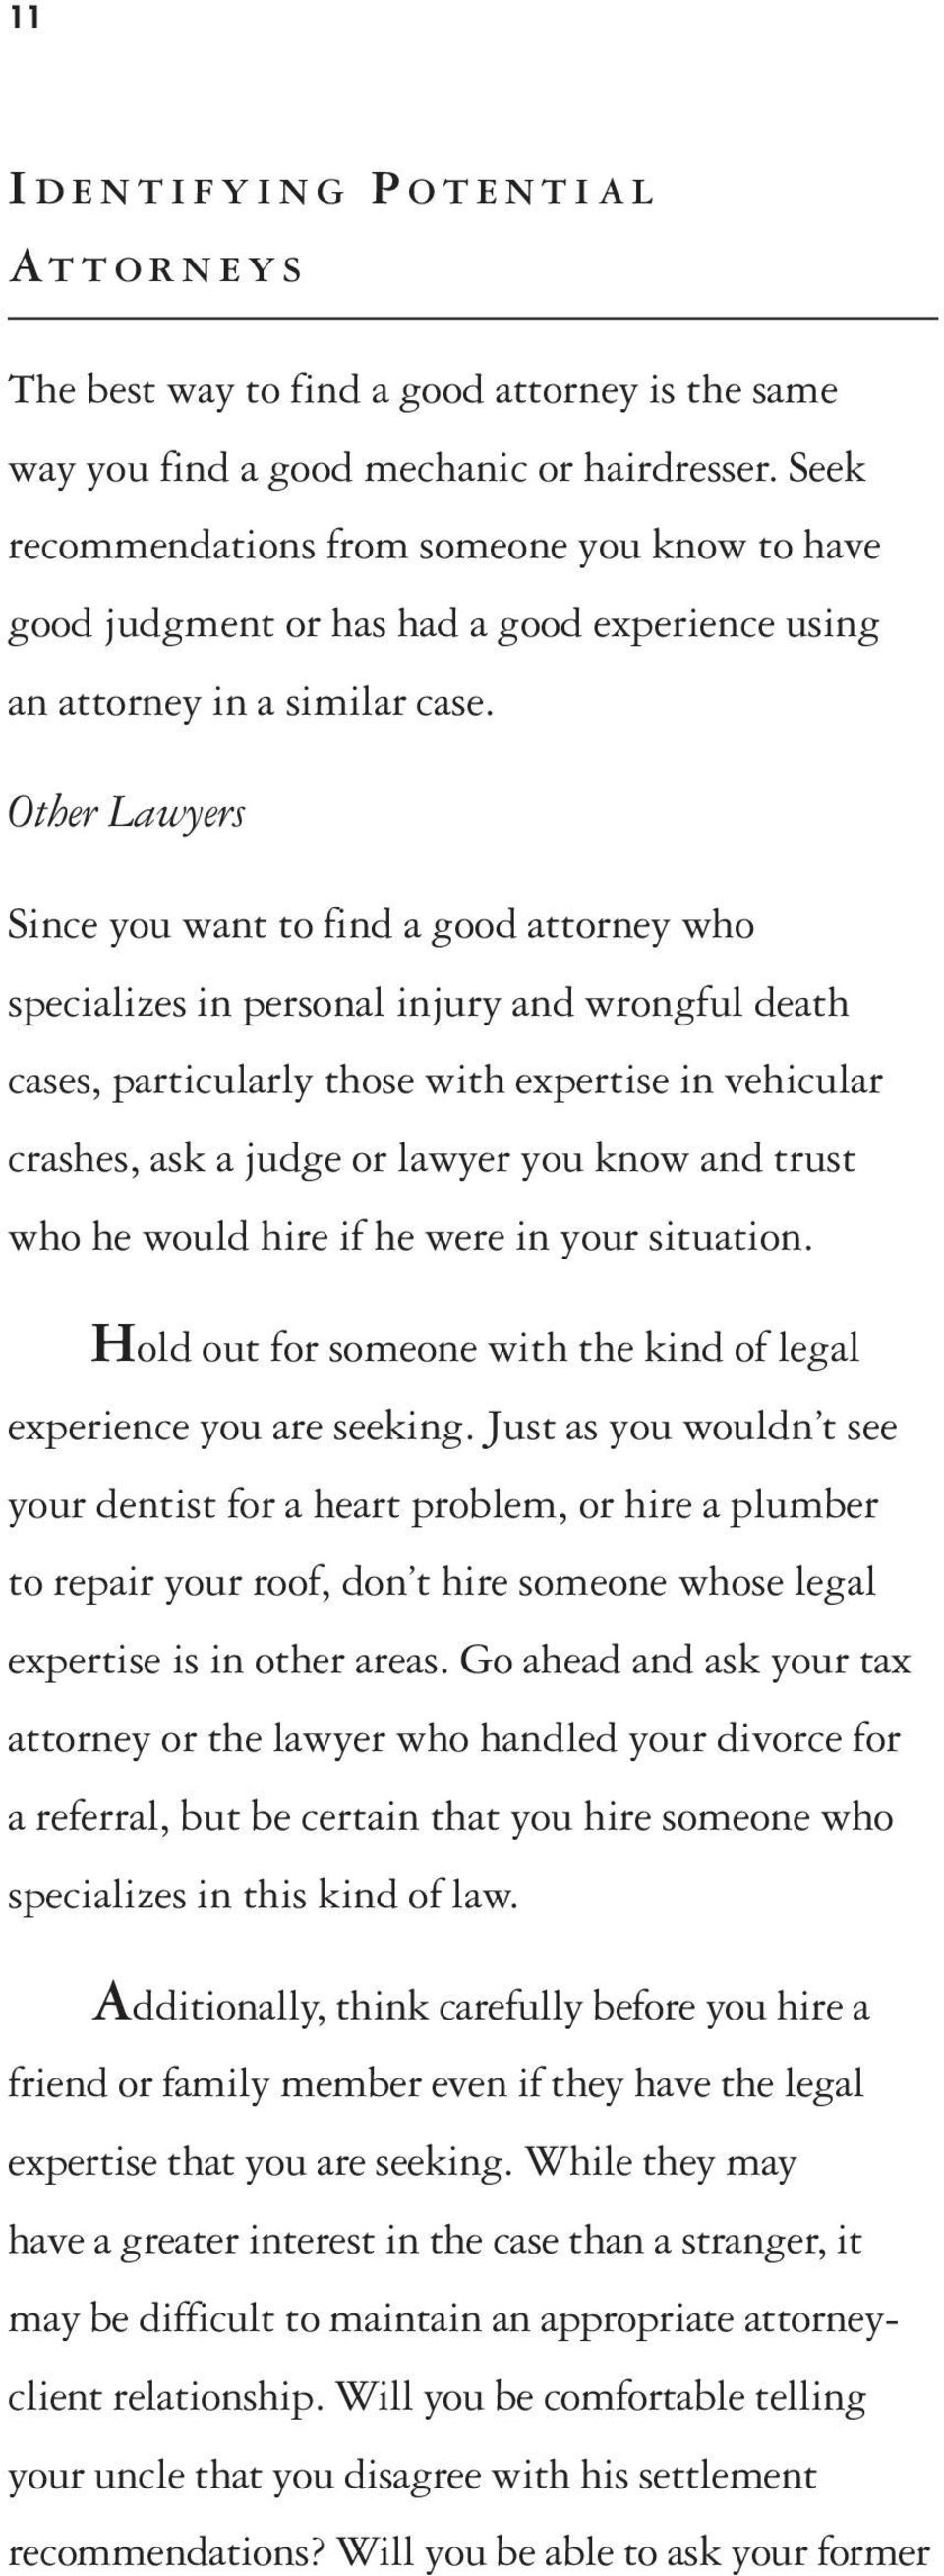 Other Lawyers Since you want to find a good attorney who specializes in personal injury and wrongful death cases, particularly those with expertise in vehicular crashes, ask a judge or lawyer you